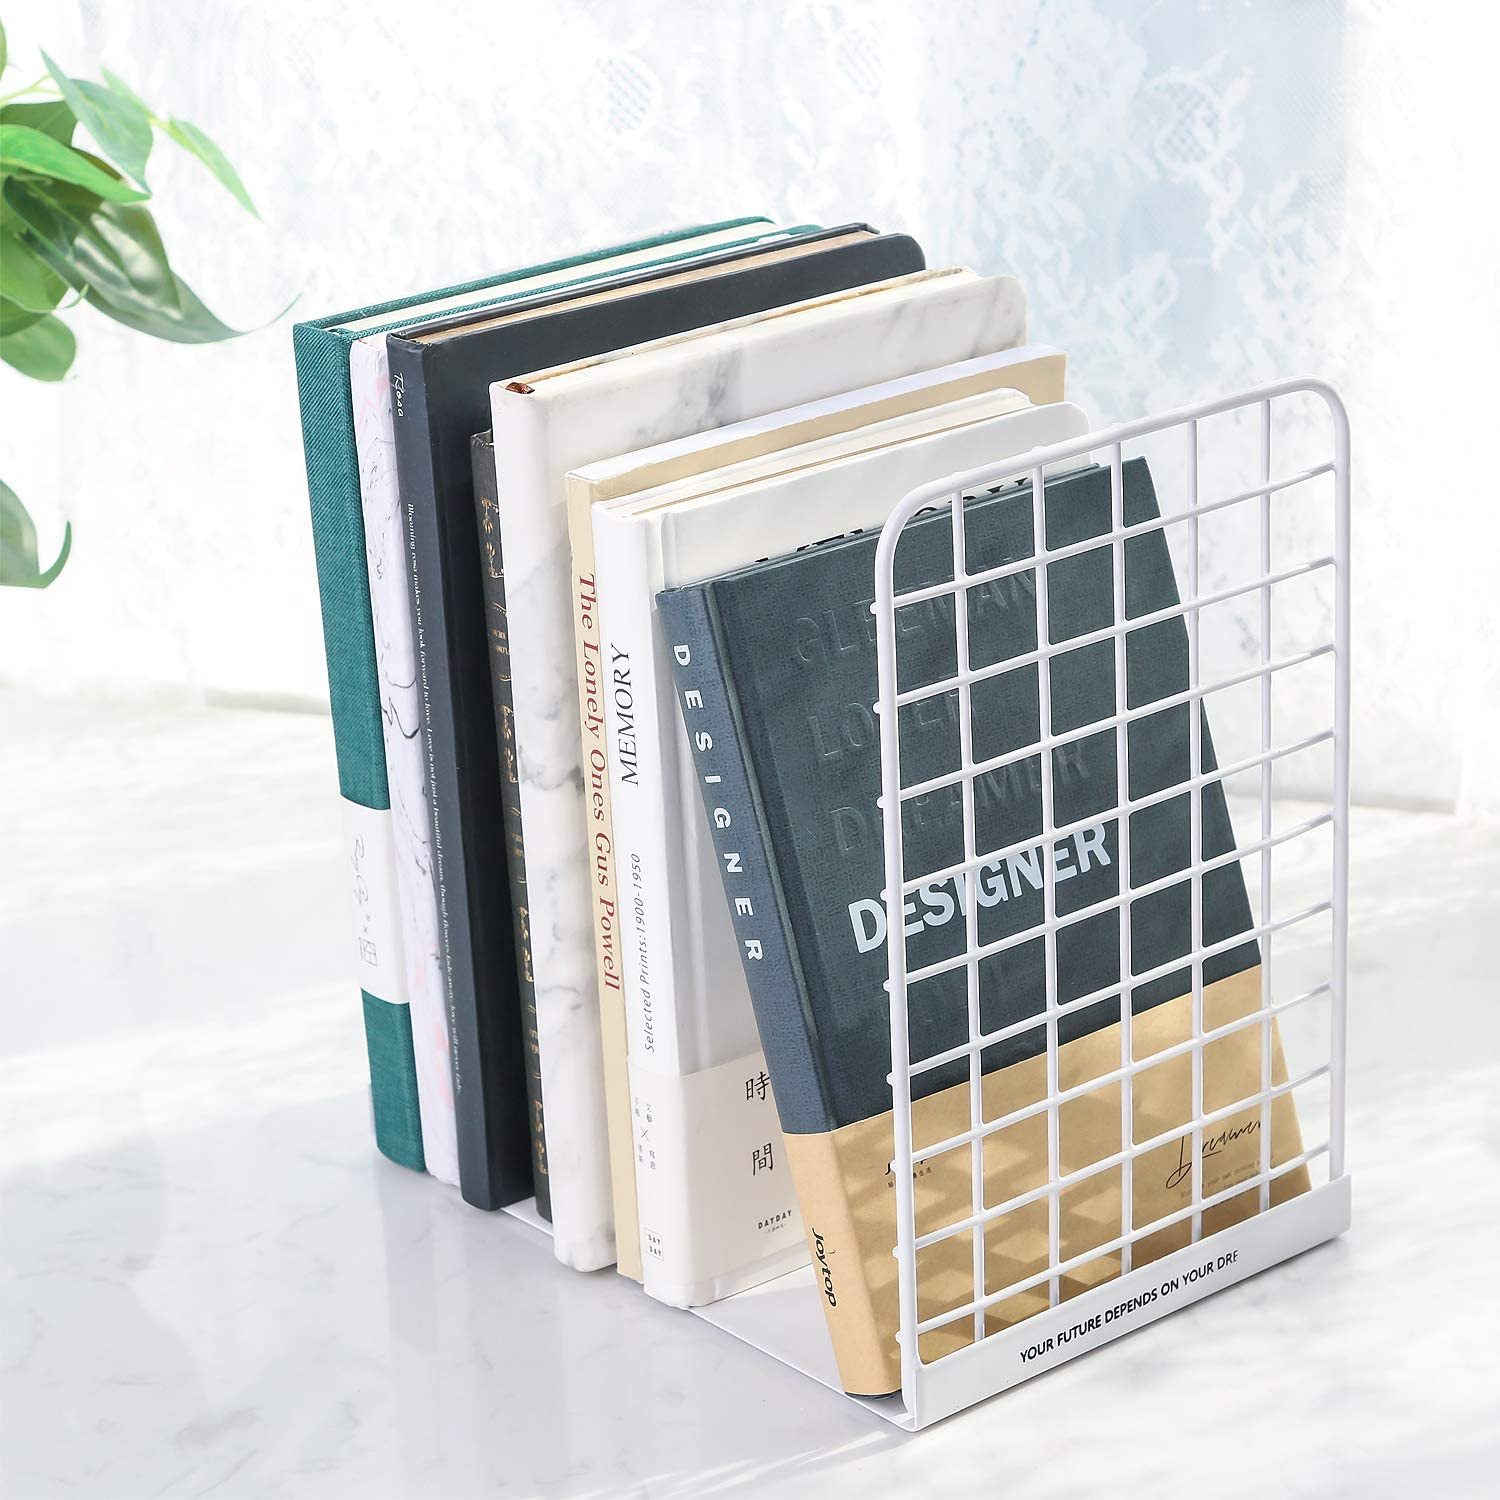 1 Pair Decorative Non-Skid Grid Book Ends for Shelves and Desktops White Home Office Book Holder Stand Nugorise Metal Bookends